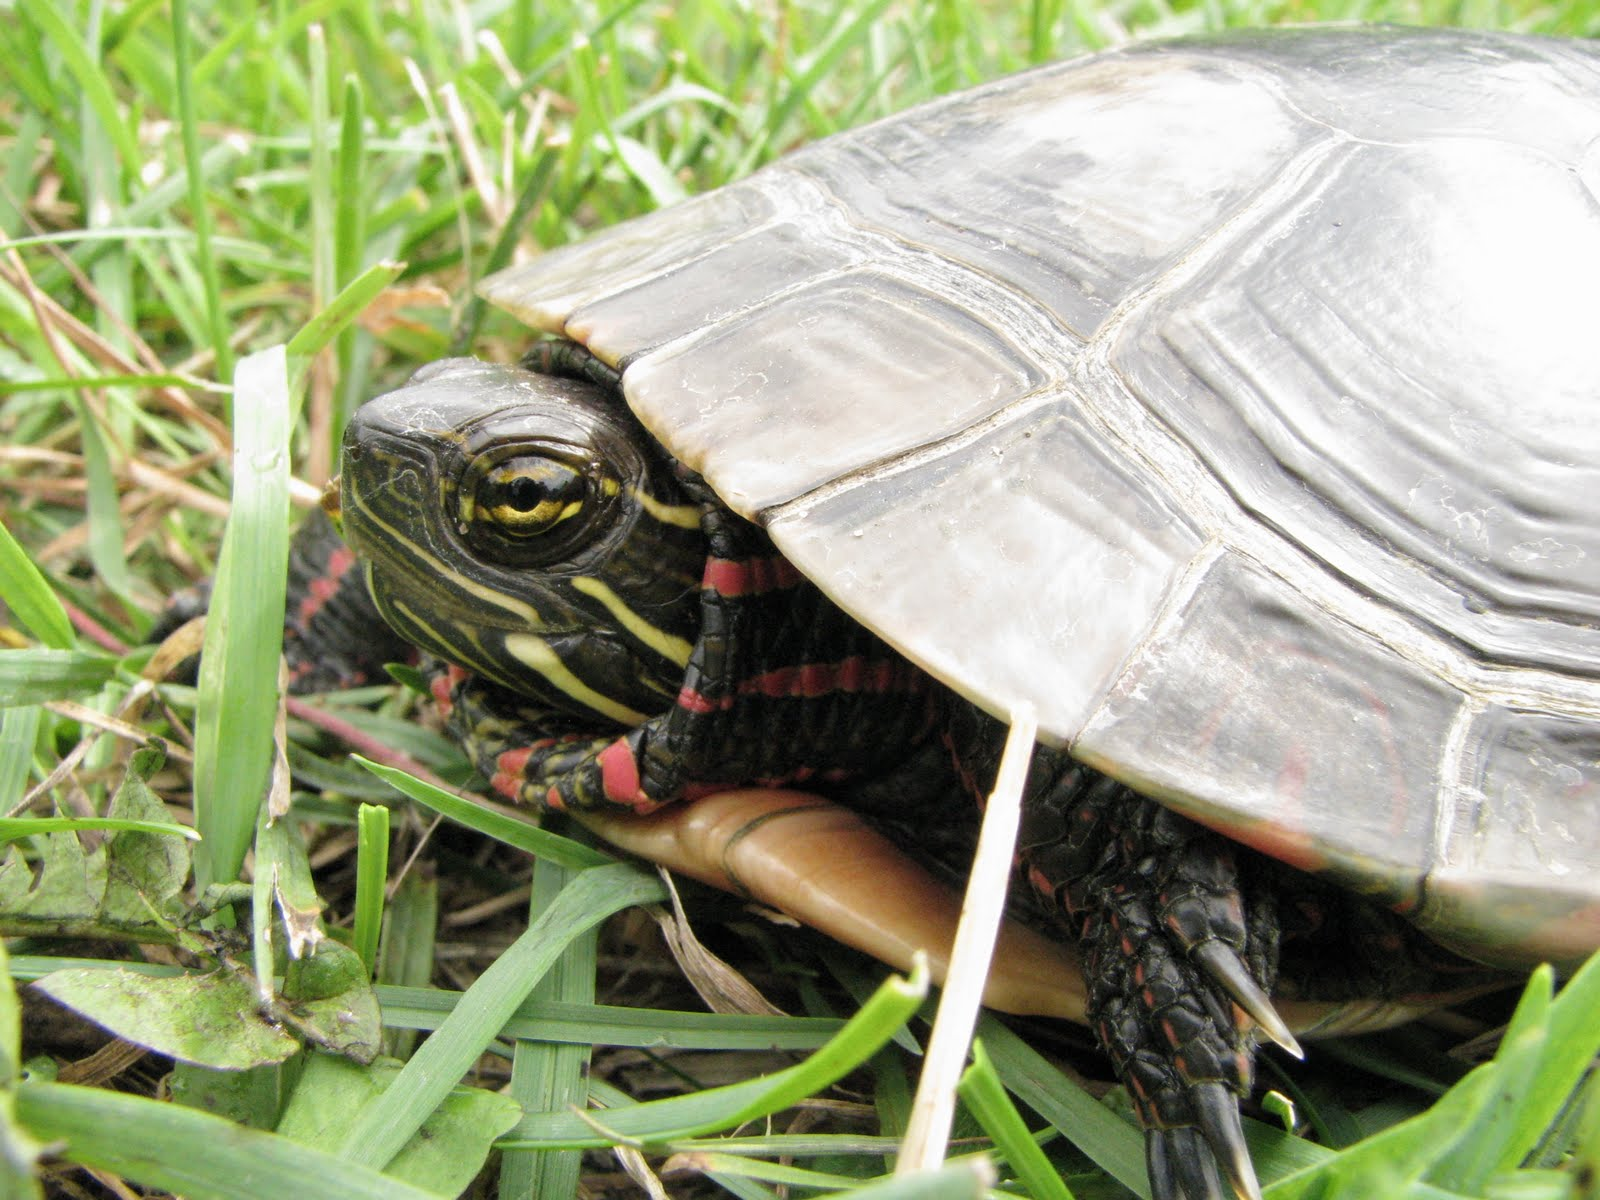 Do turtles make good pets? Not for everybody.